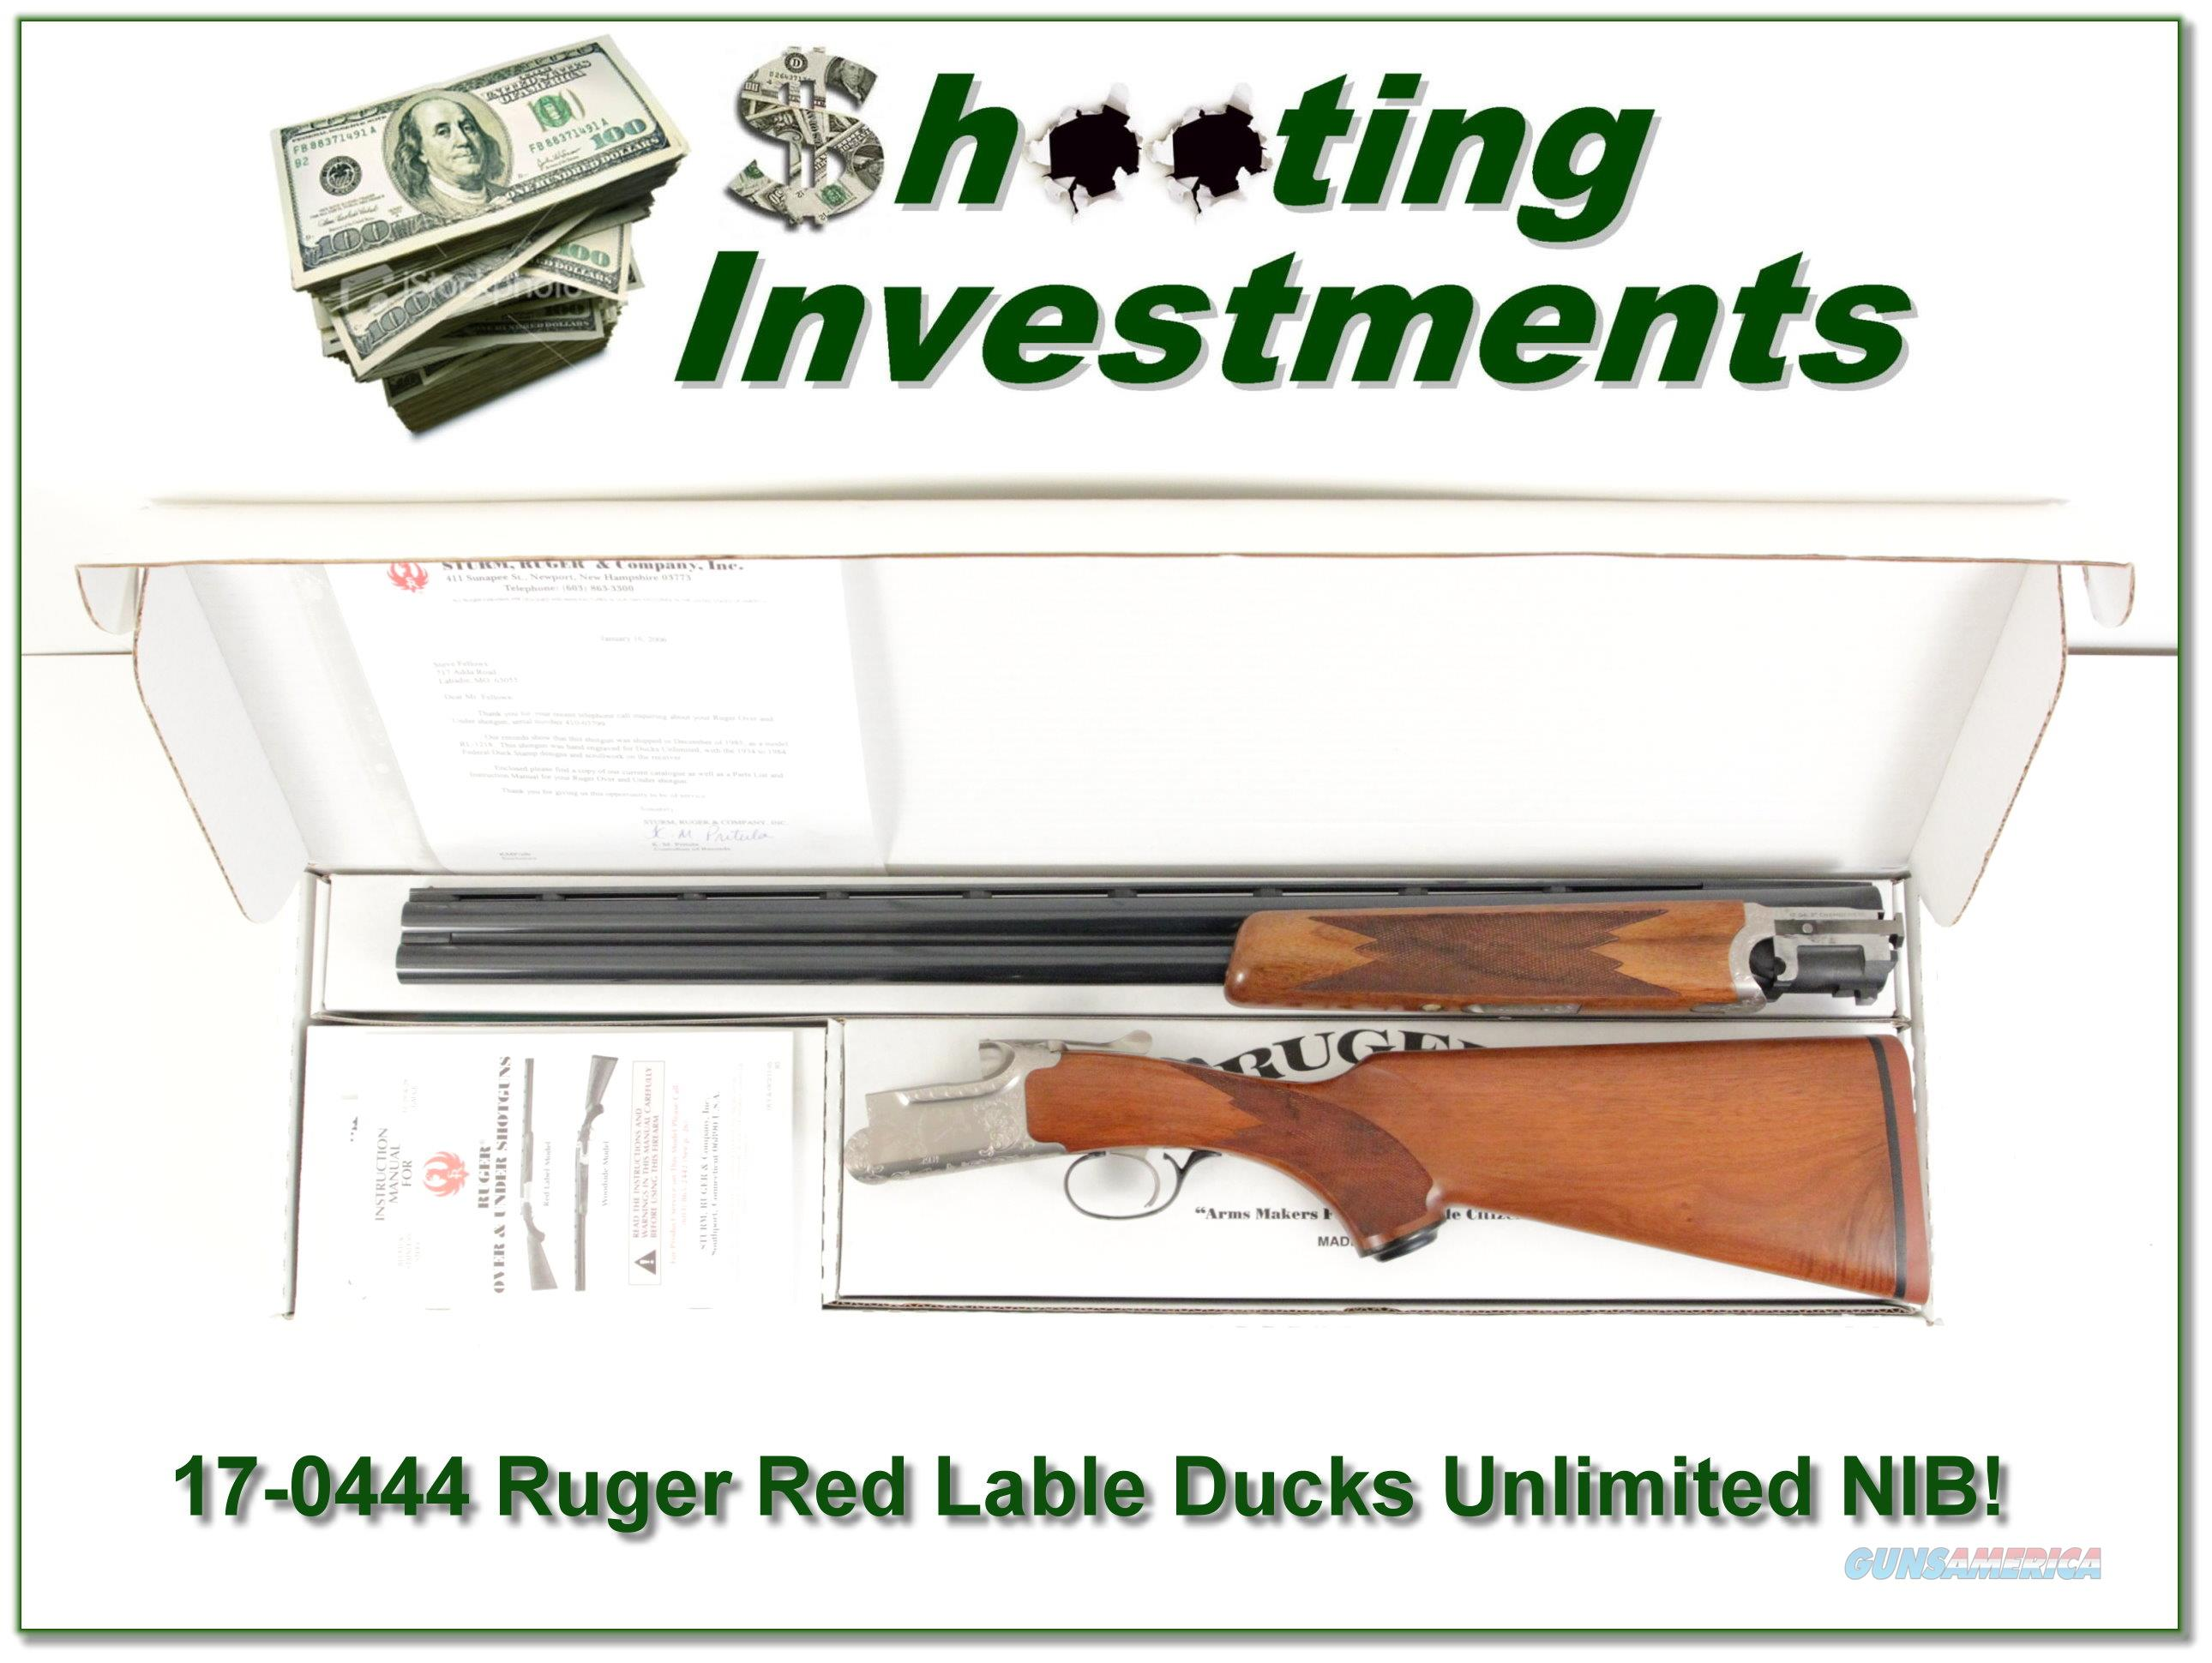 Ruger Red Label 12 Ga Ducks Unlimited hand engraved NIB!  Guns > Shotguns > Ruger Shotguns > Hunting